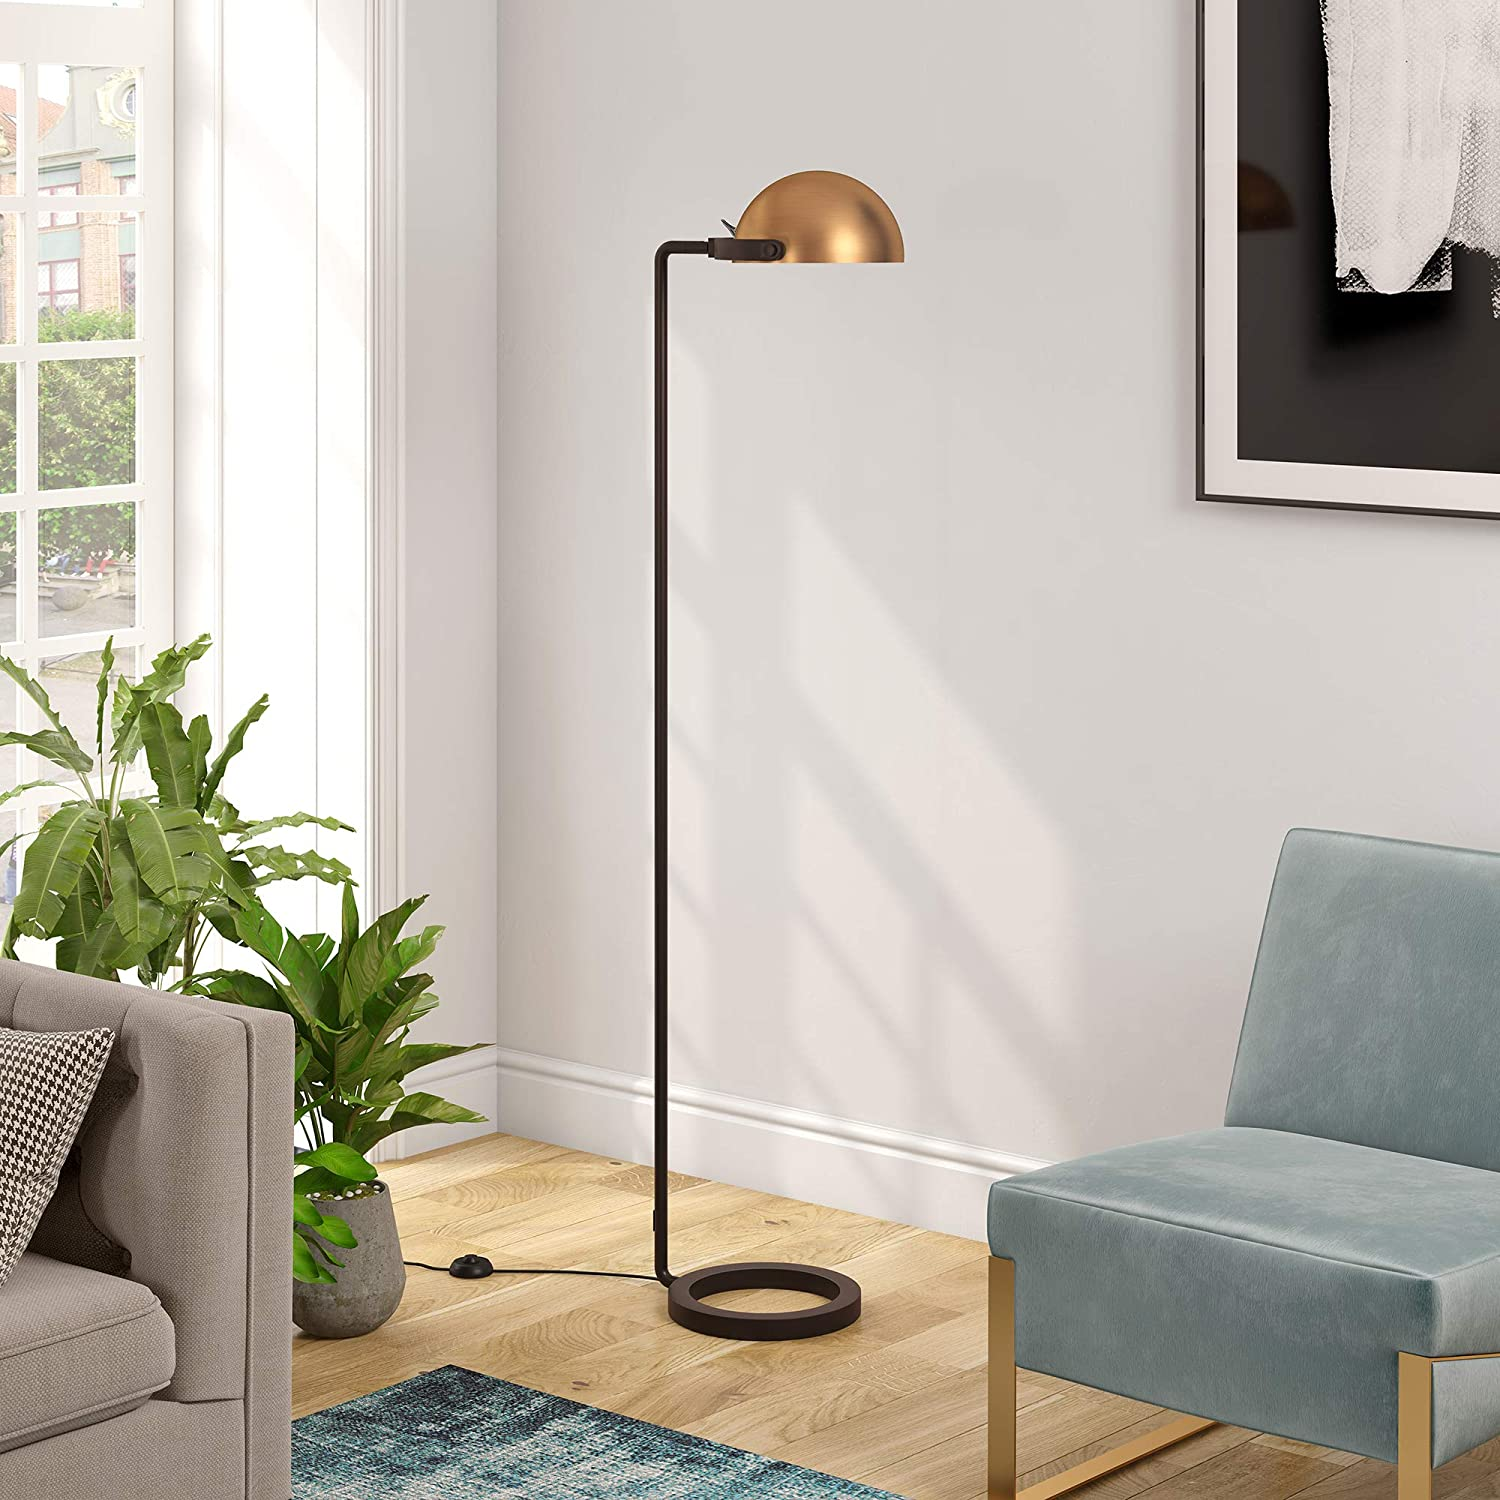 HennHart Modern Industrial Austin Mall Floor Lamp Contemporary in Challenge the lowest price of Japan ☆ Blackened